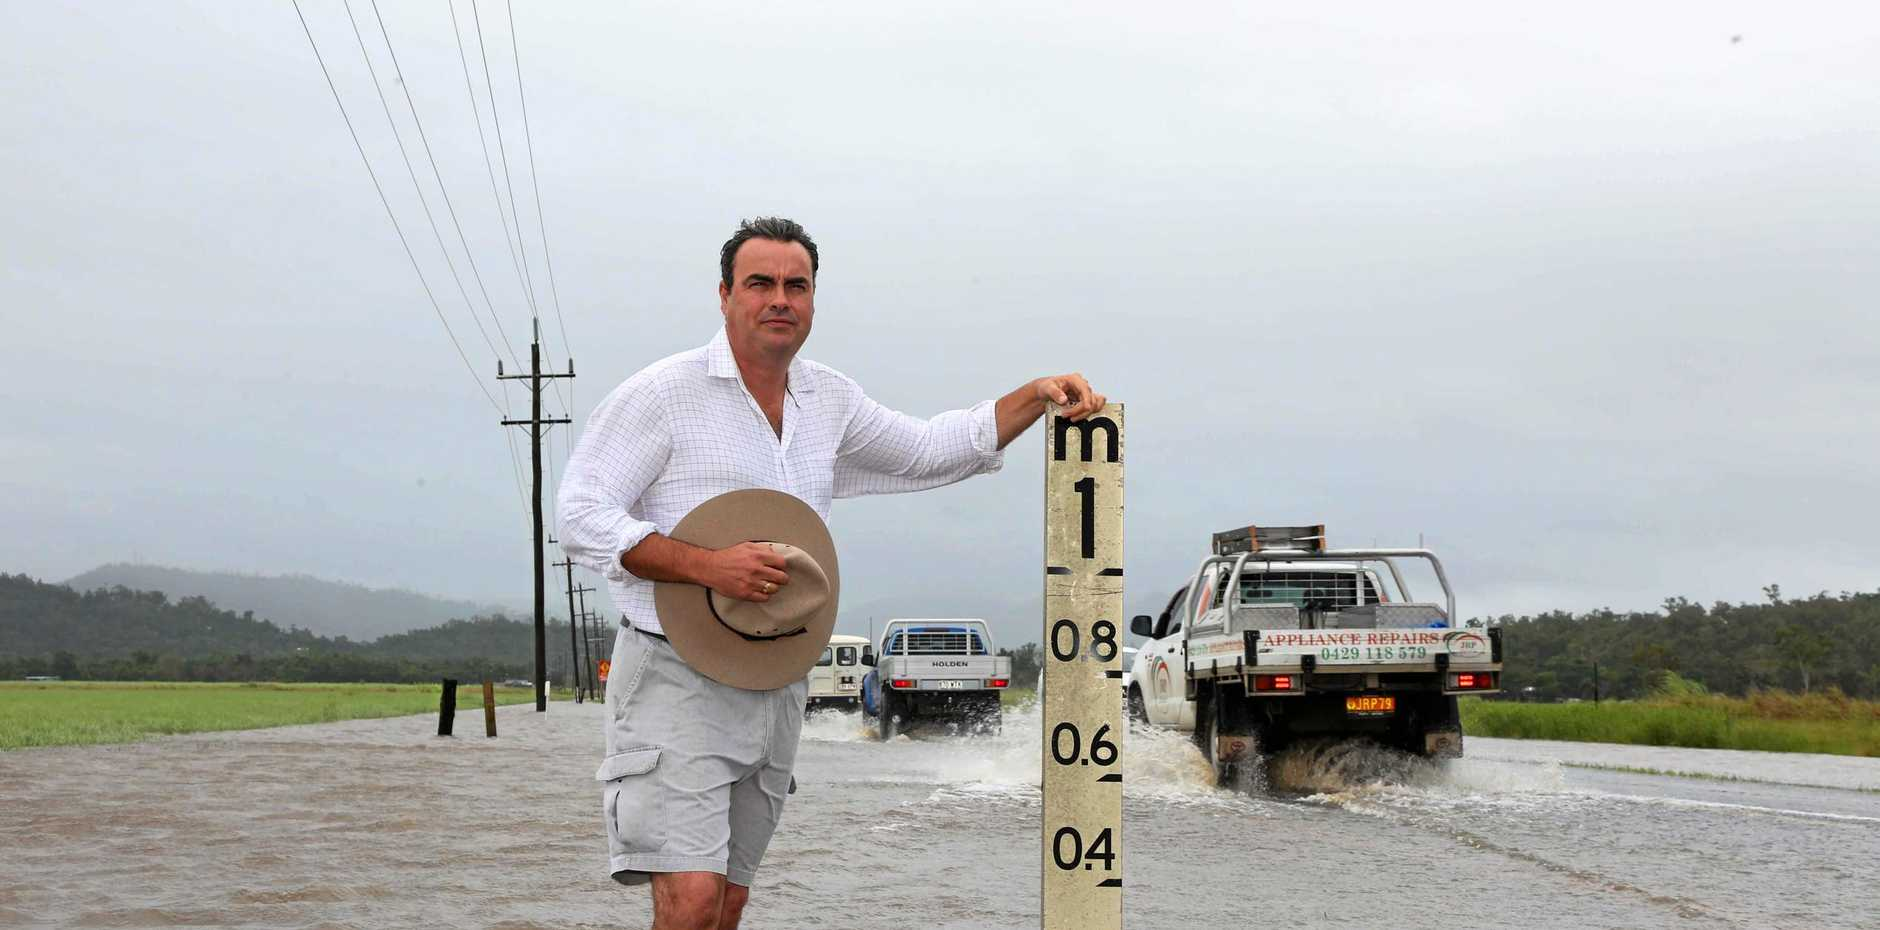 FLOOD FIX: Member for Whitsunday Jason Costigan has been campaigning for a fix to flood-prone Hamilton Plains all week.